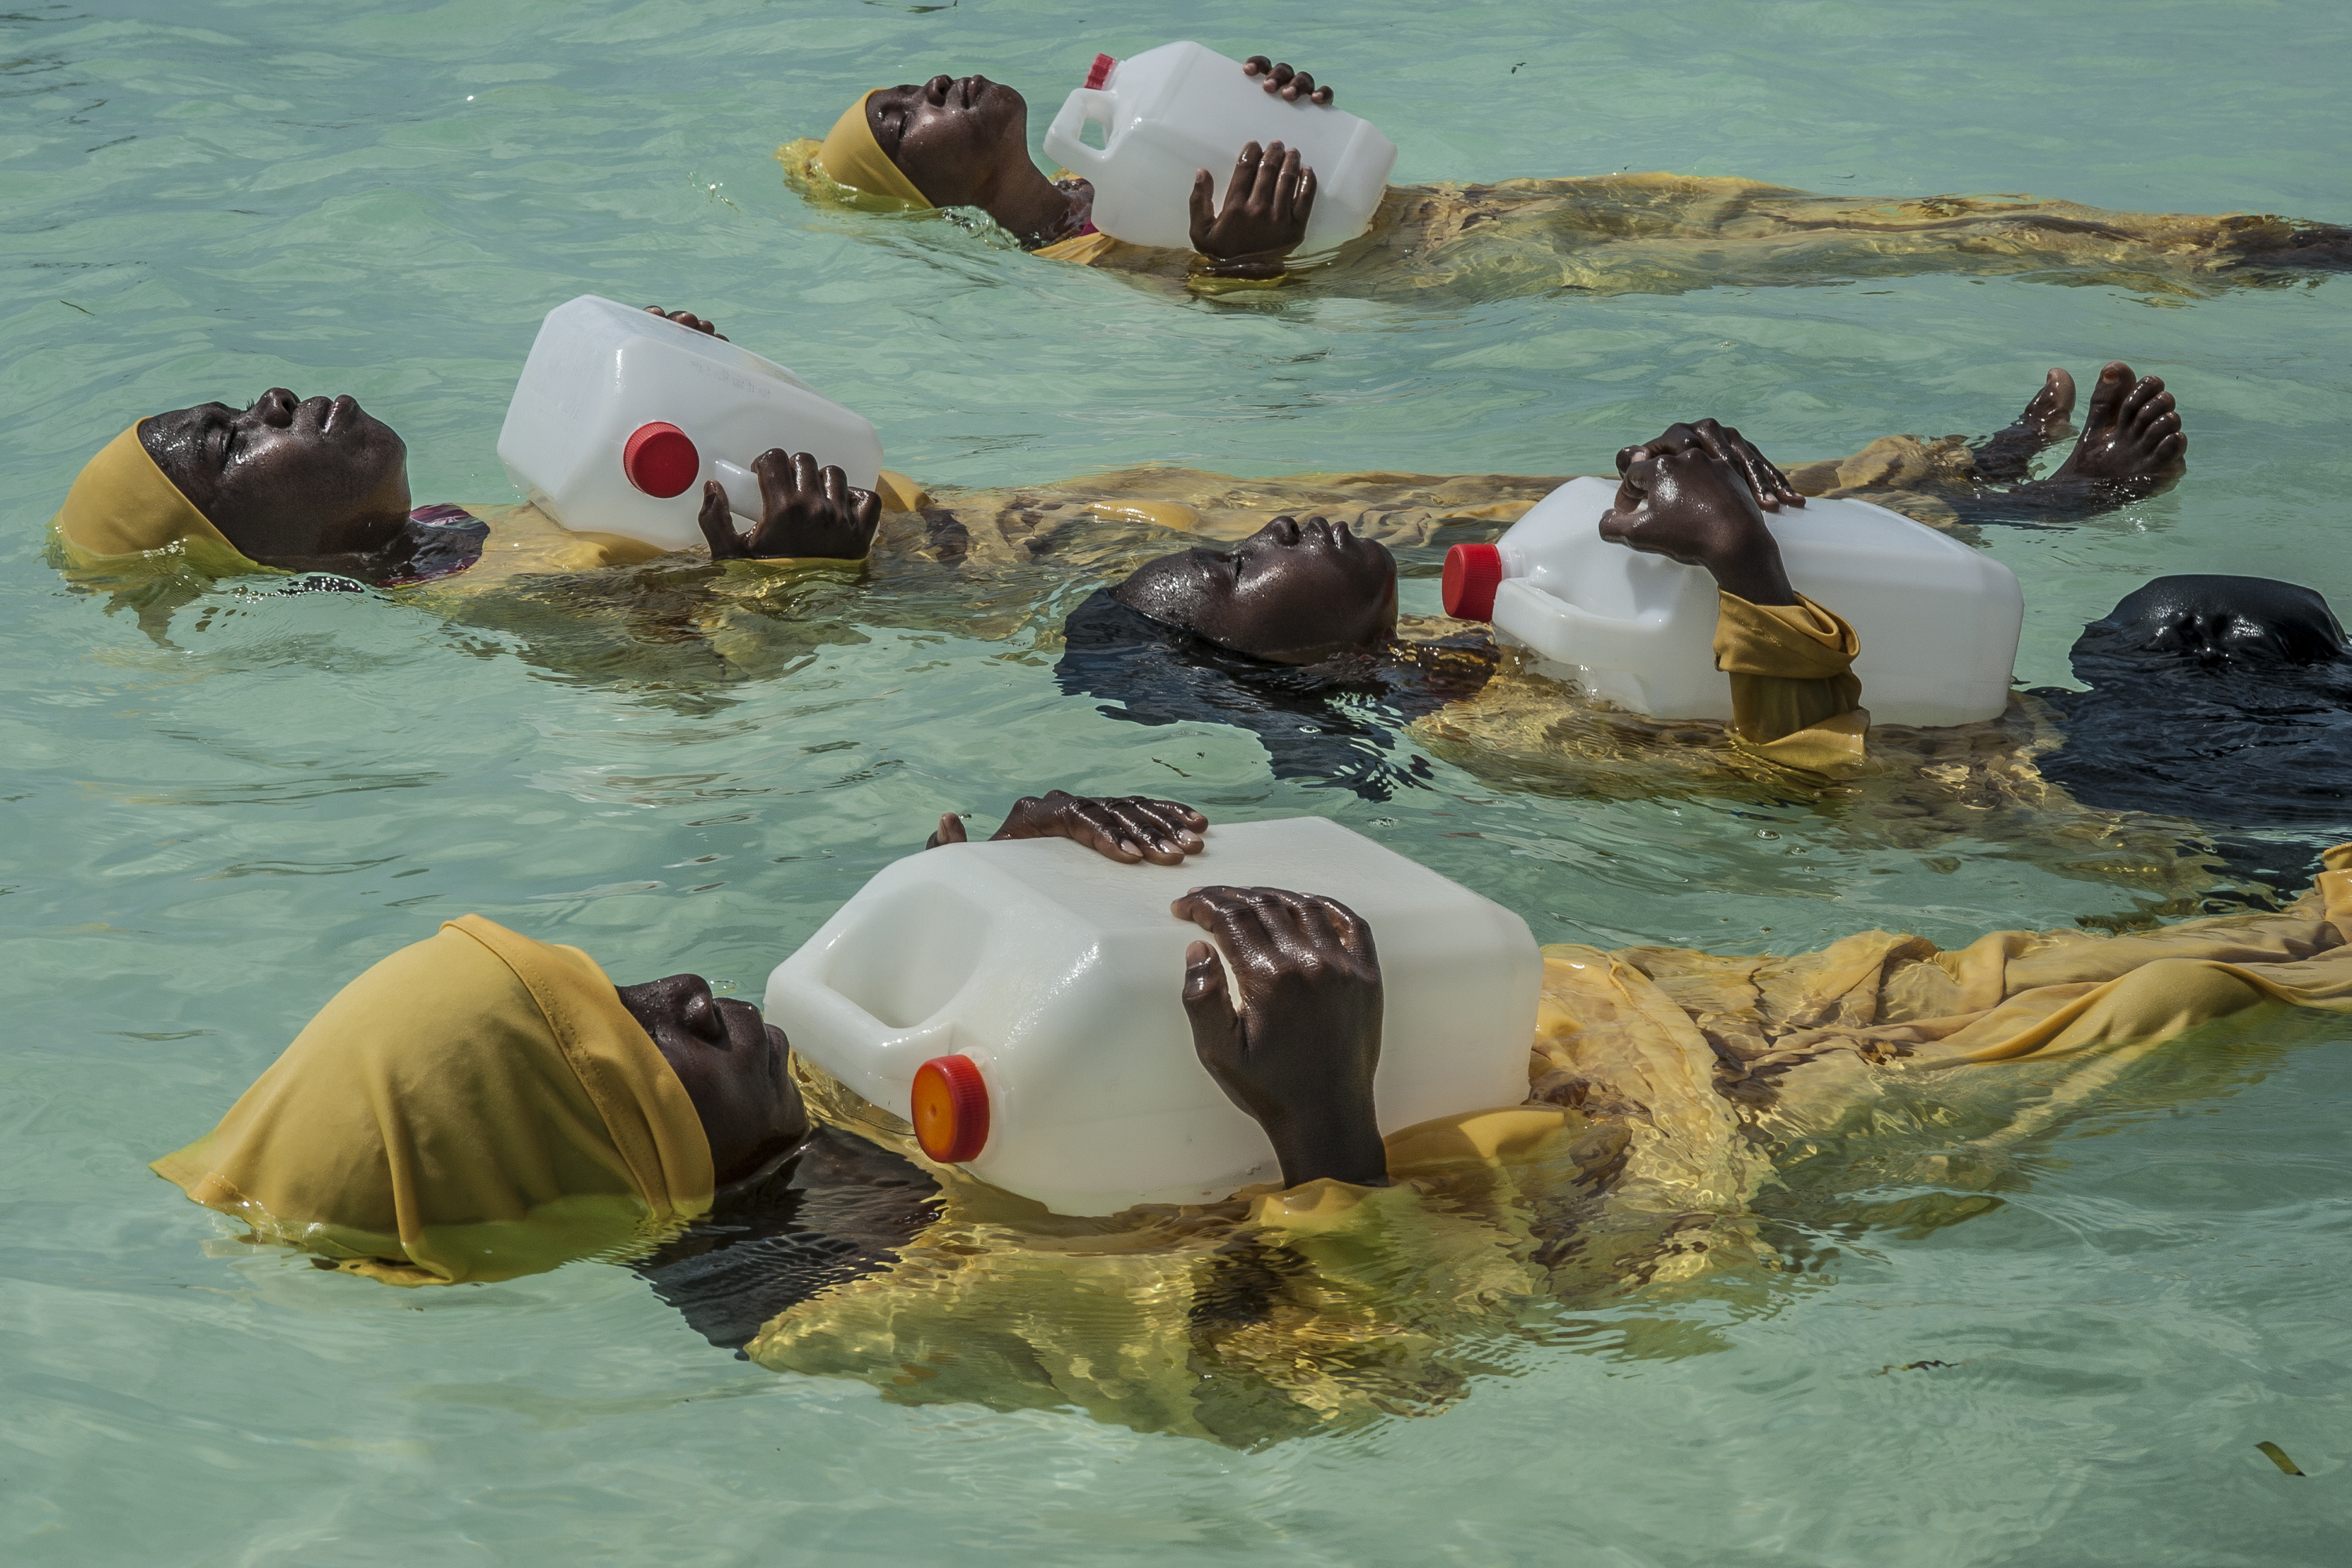 Students from the Kijini Primary School learn to swim and perform rescues, in the Indian Ocean, off Muyuni Beach, Zanzibar.